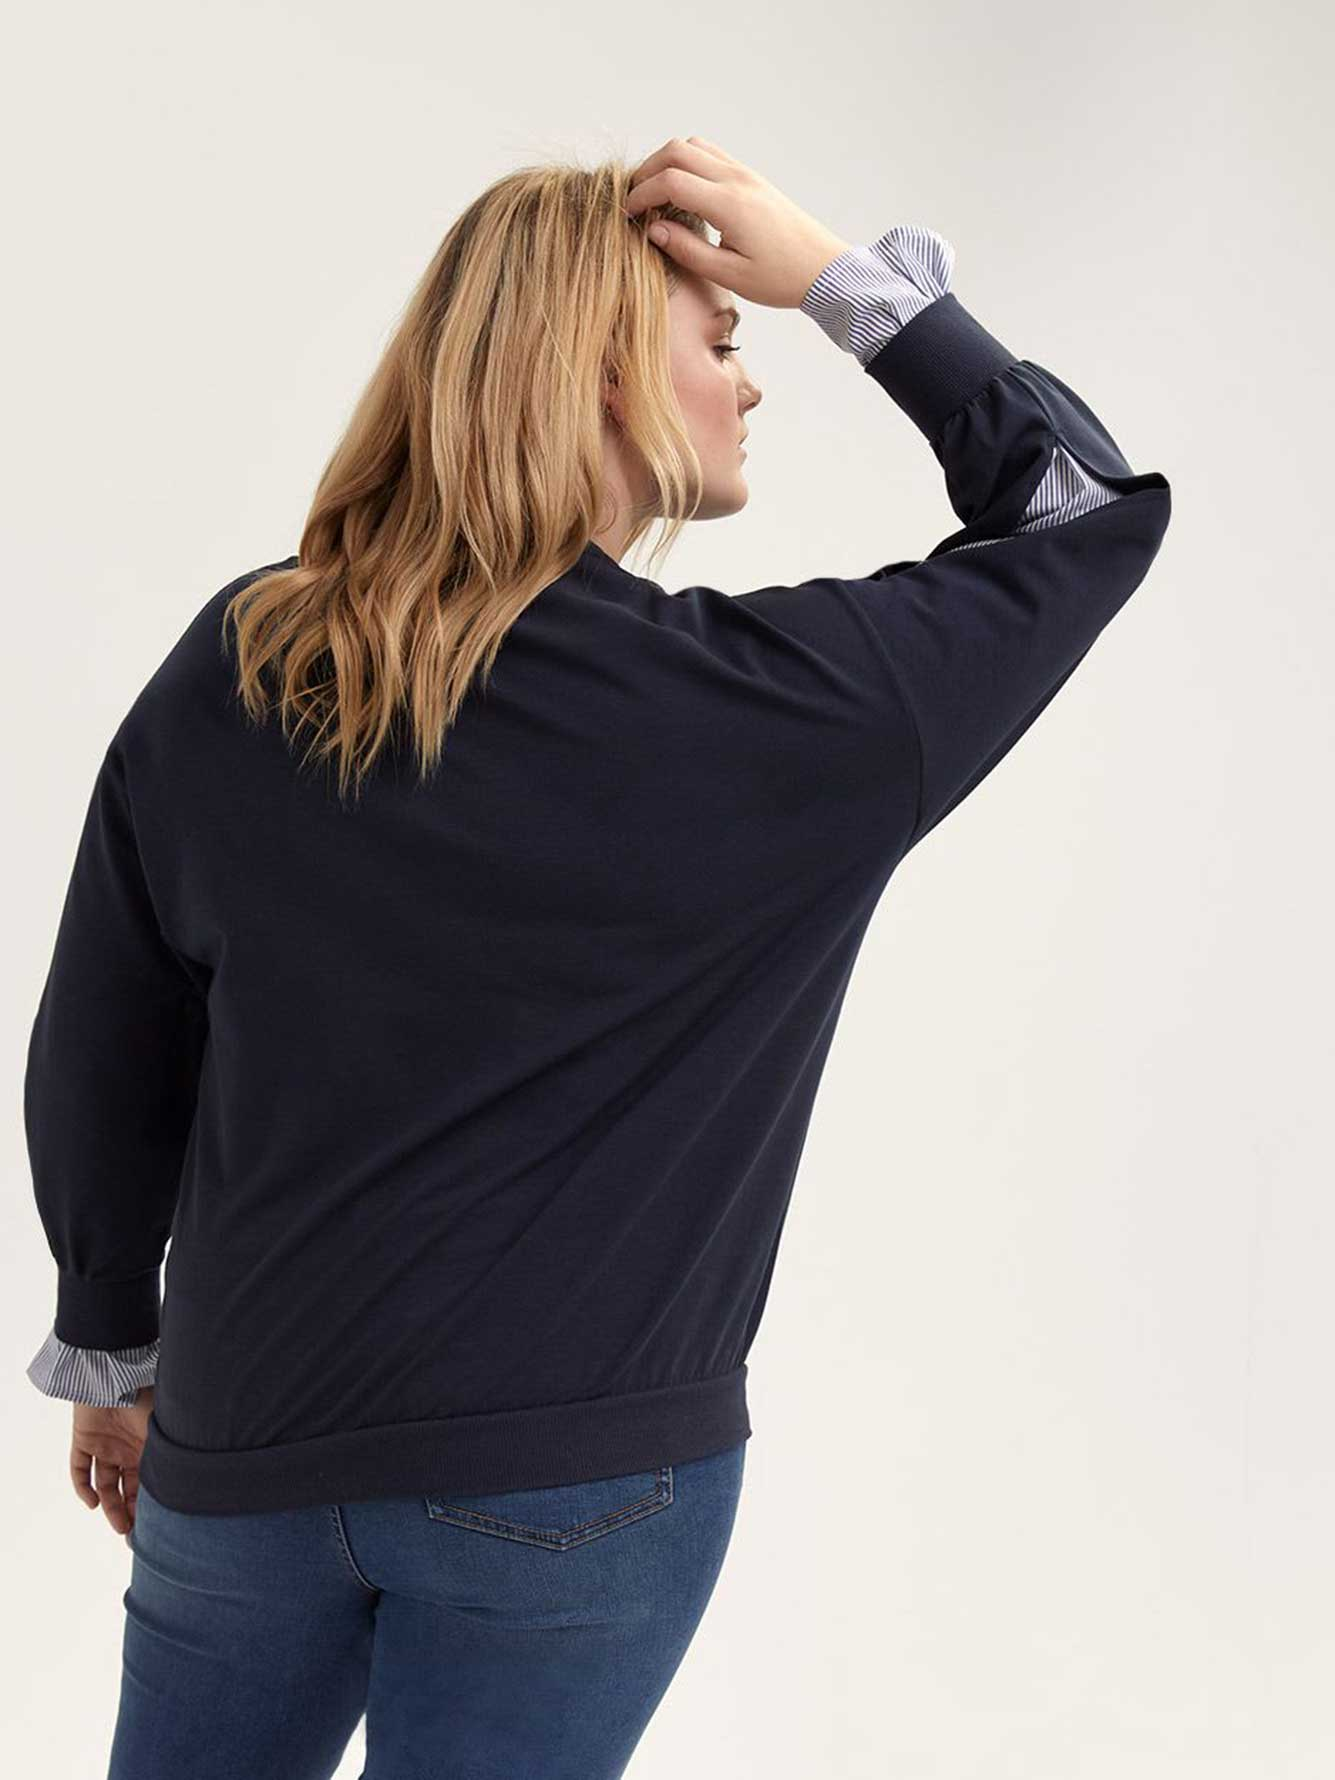 Sweatshirt with Slit Sleeves and Woven Underlay - L&L